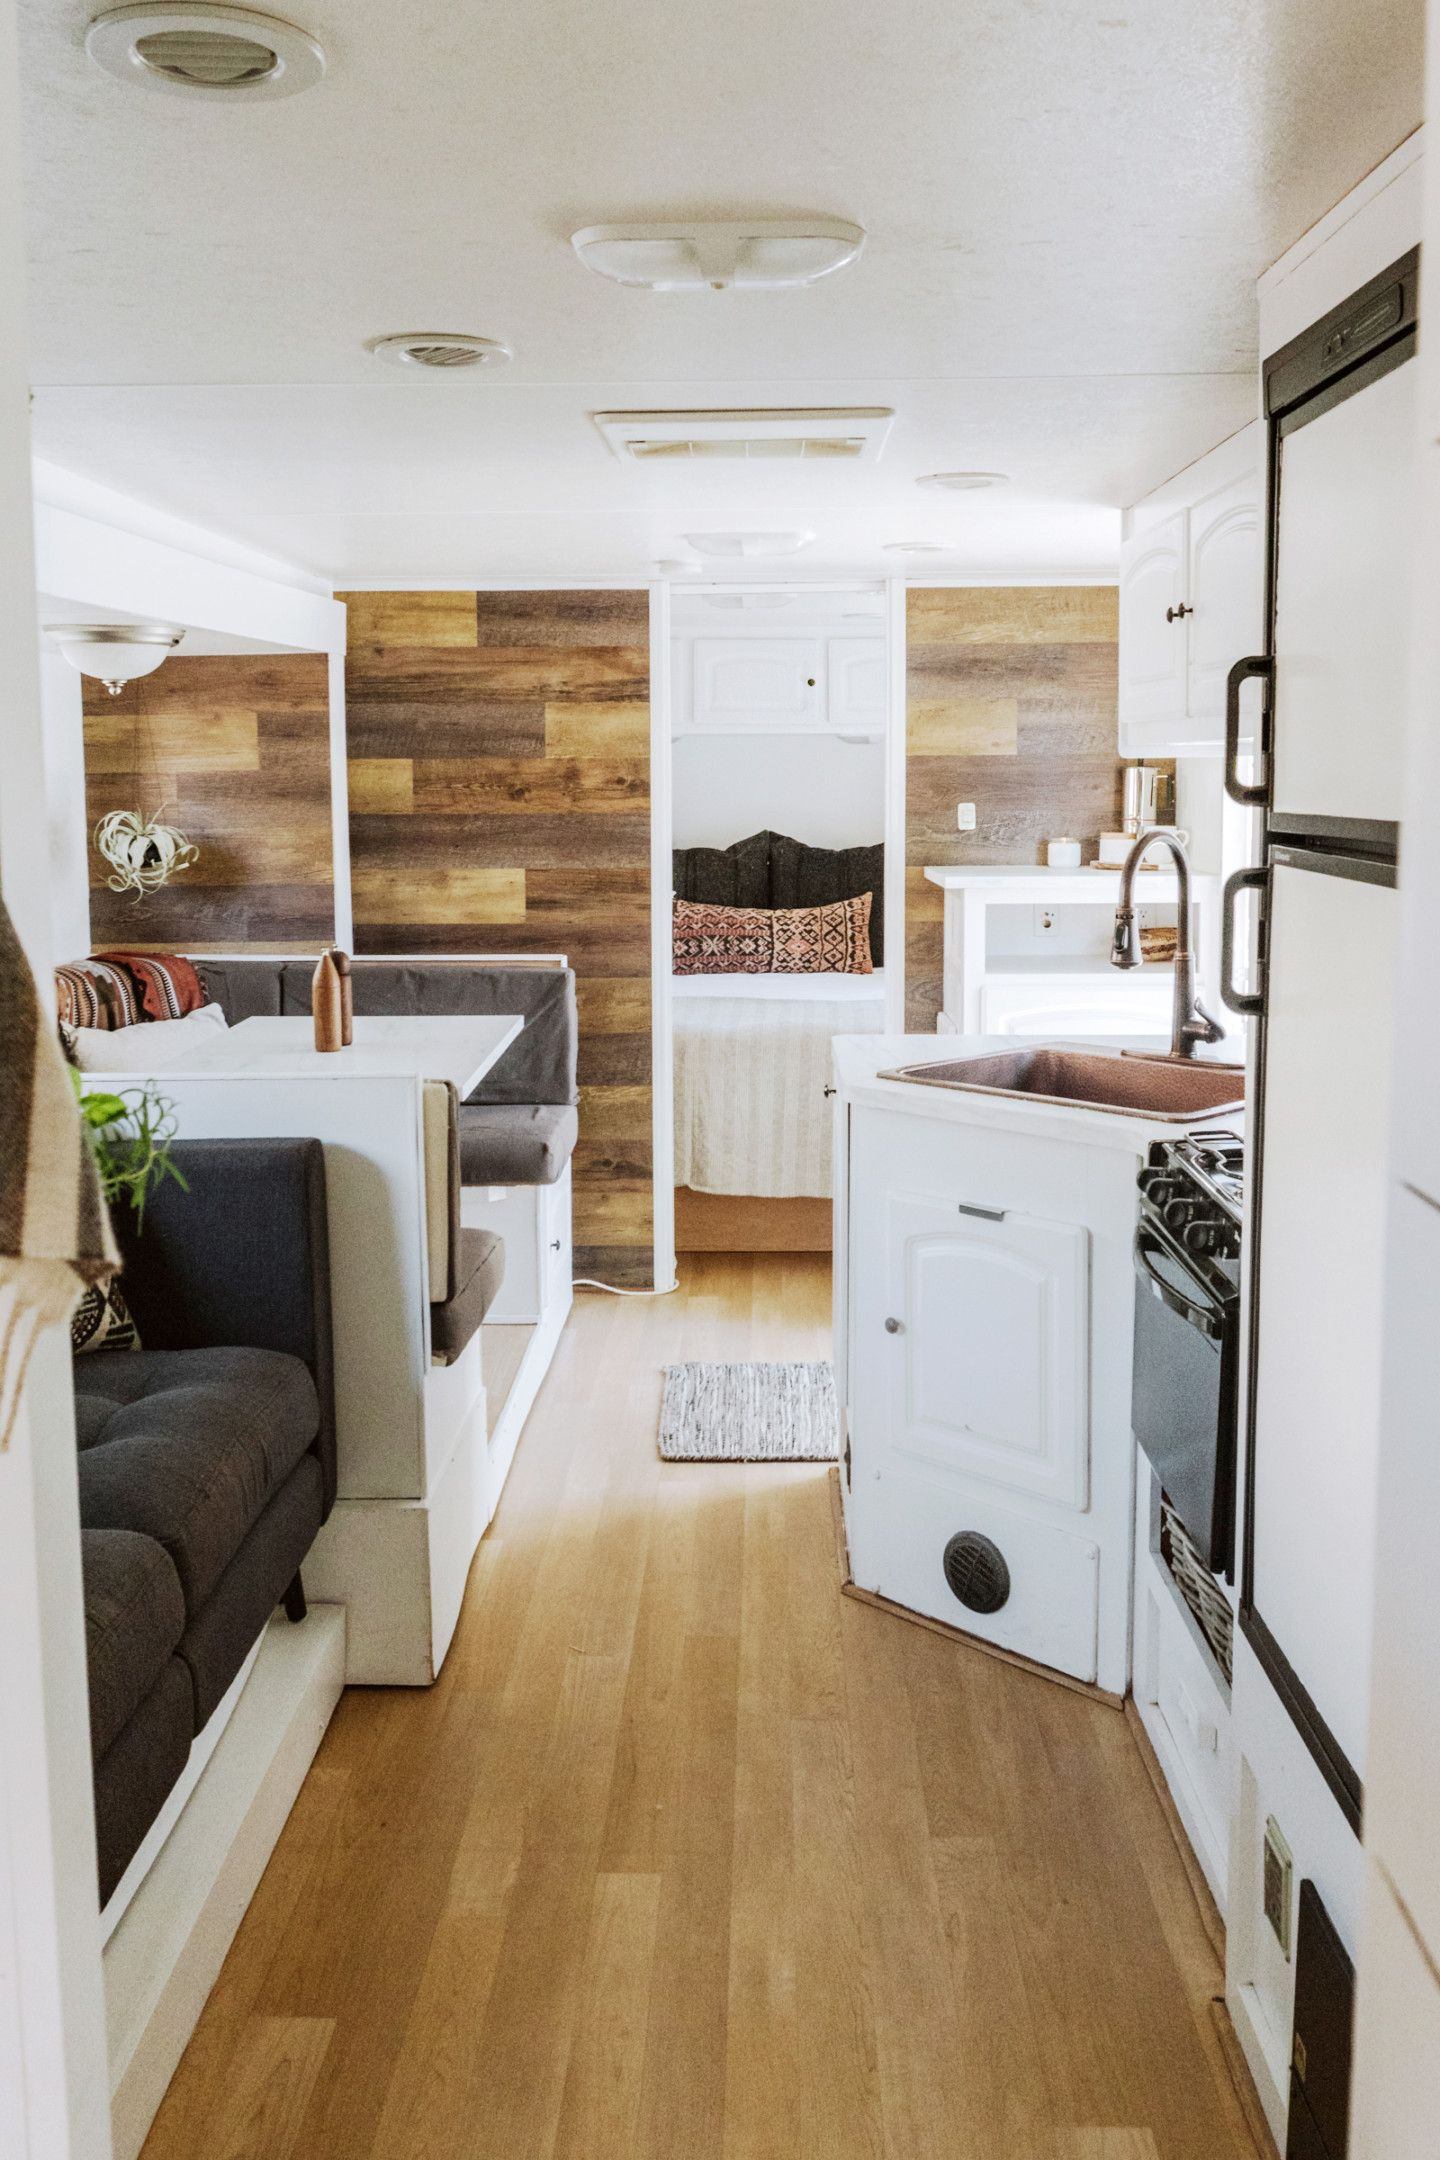 This dreamy travel trailer is next-level #vanlife | Road trips ...